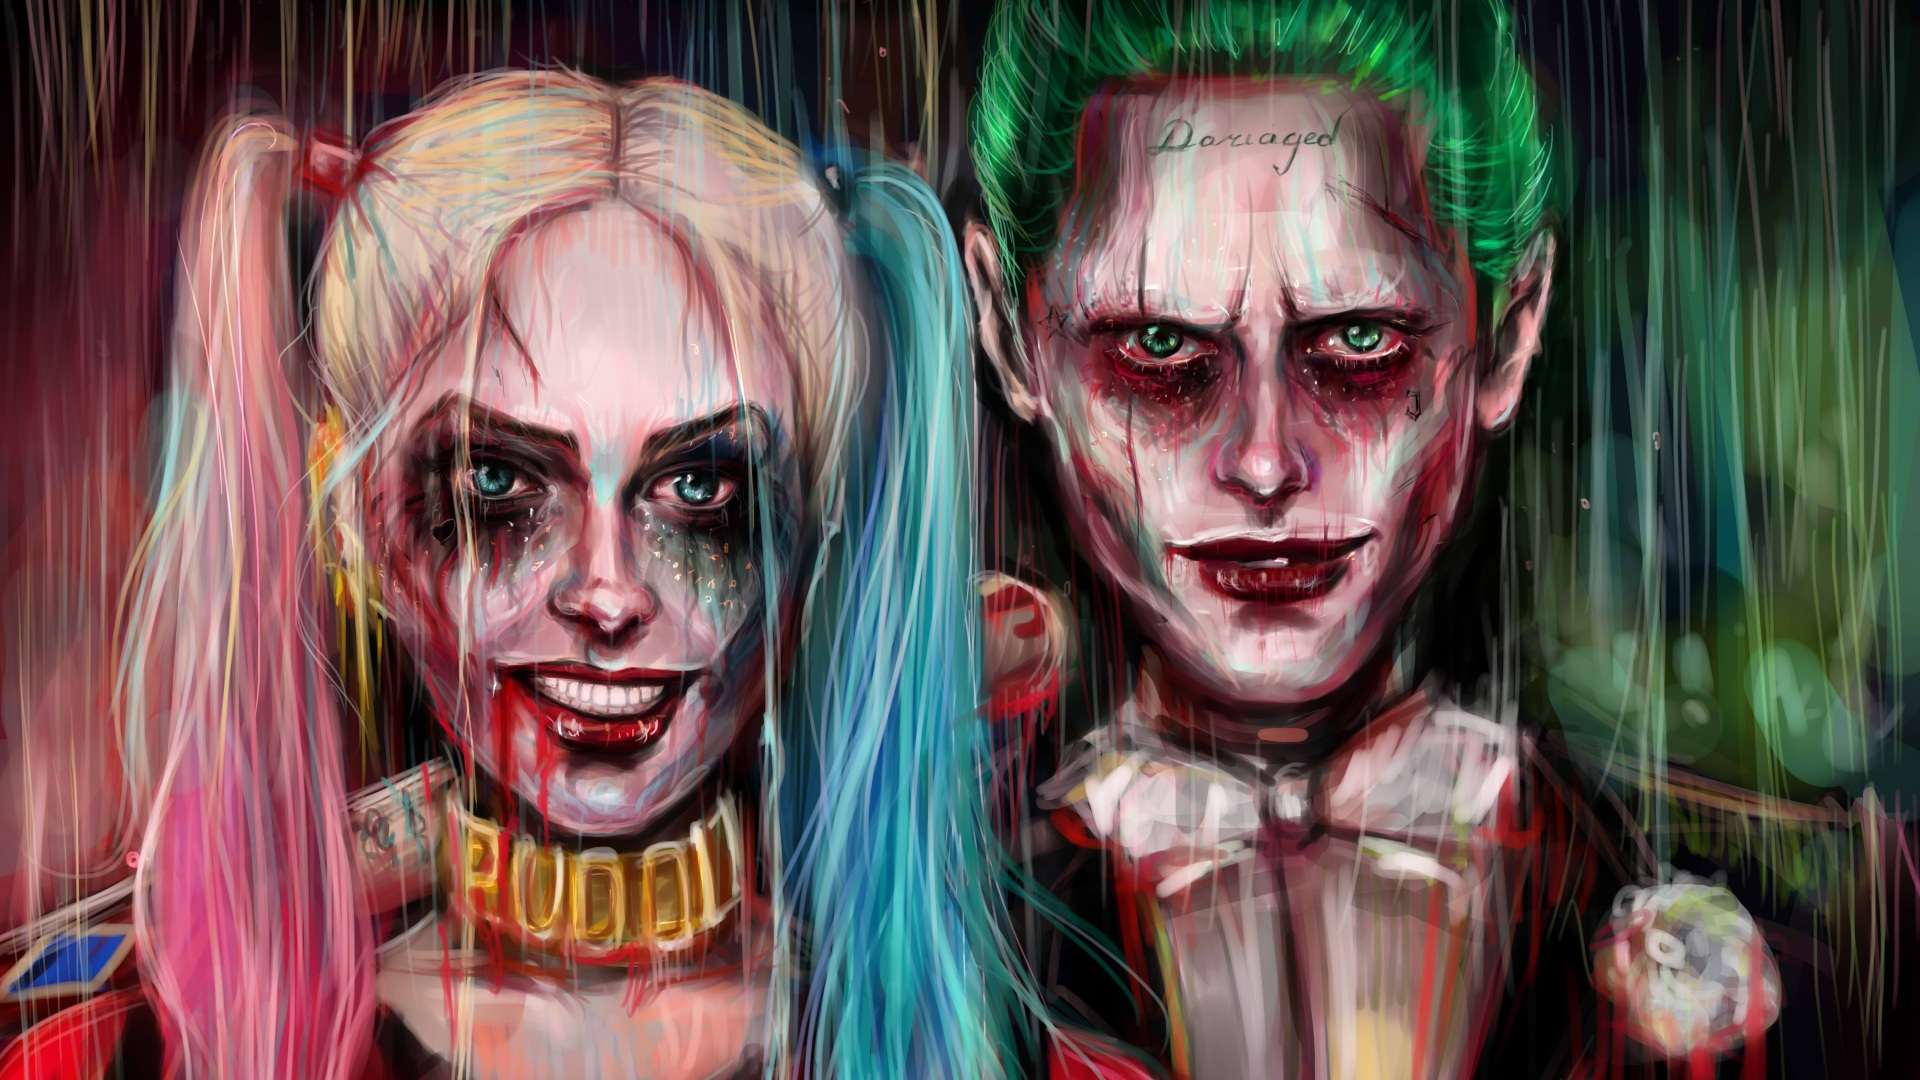 Harley quinn joker painting artwork hd 4k wallpaper for Joker immagini hd